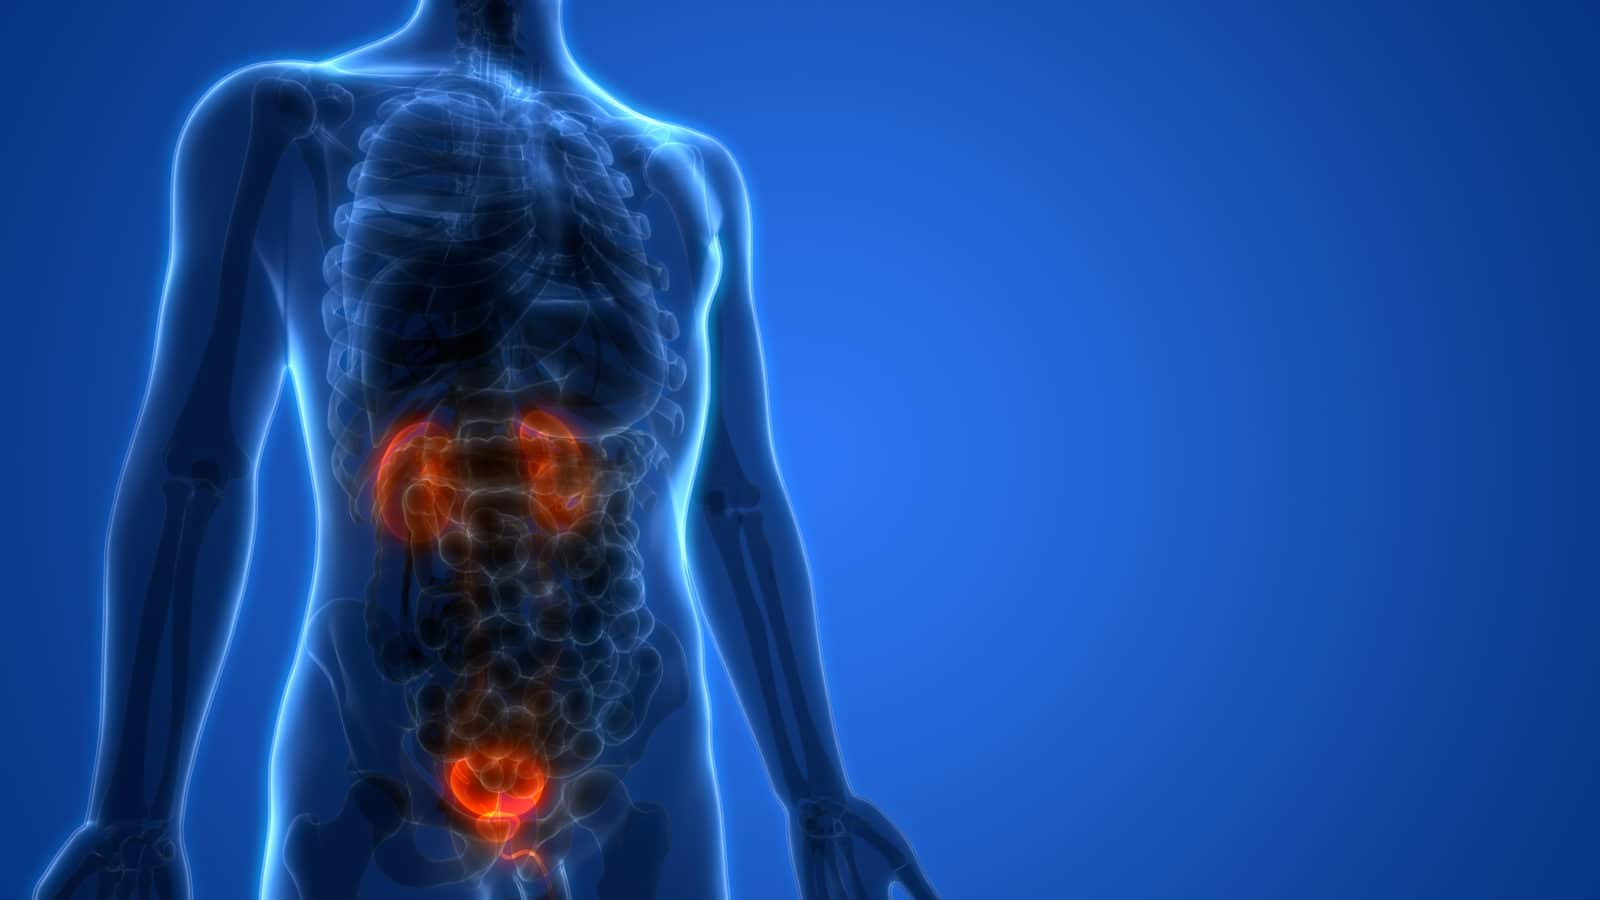 What You Need to Know About Bladder Health and Pain